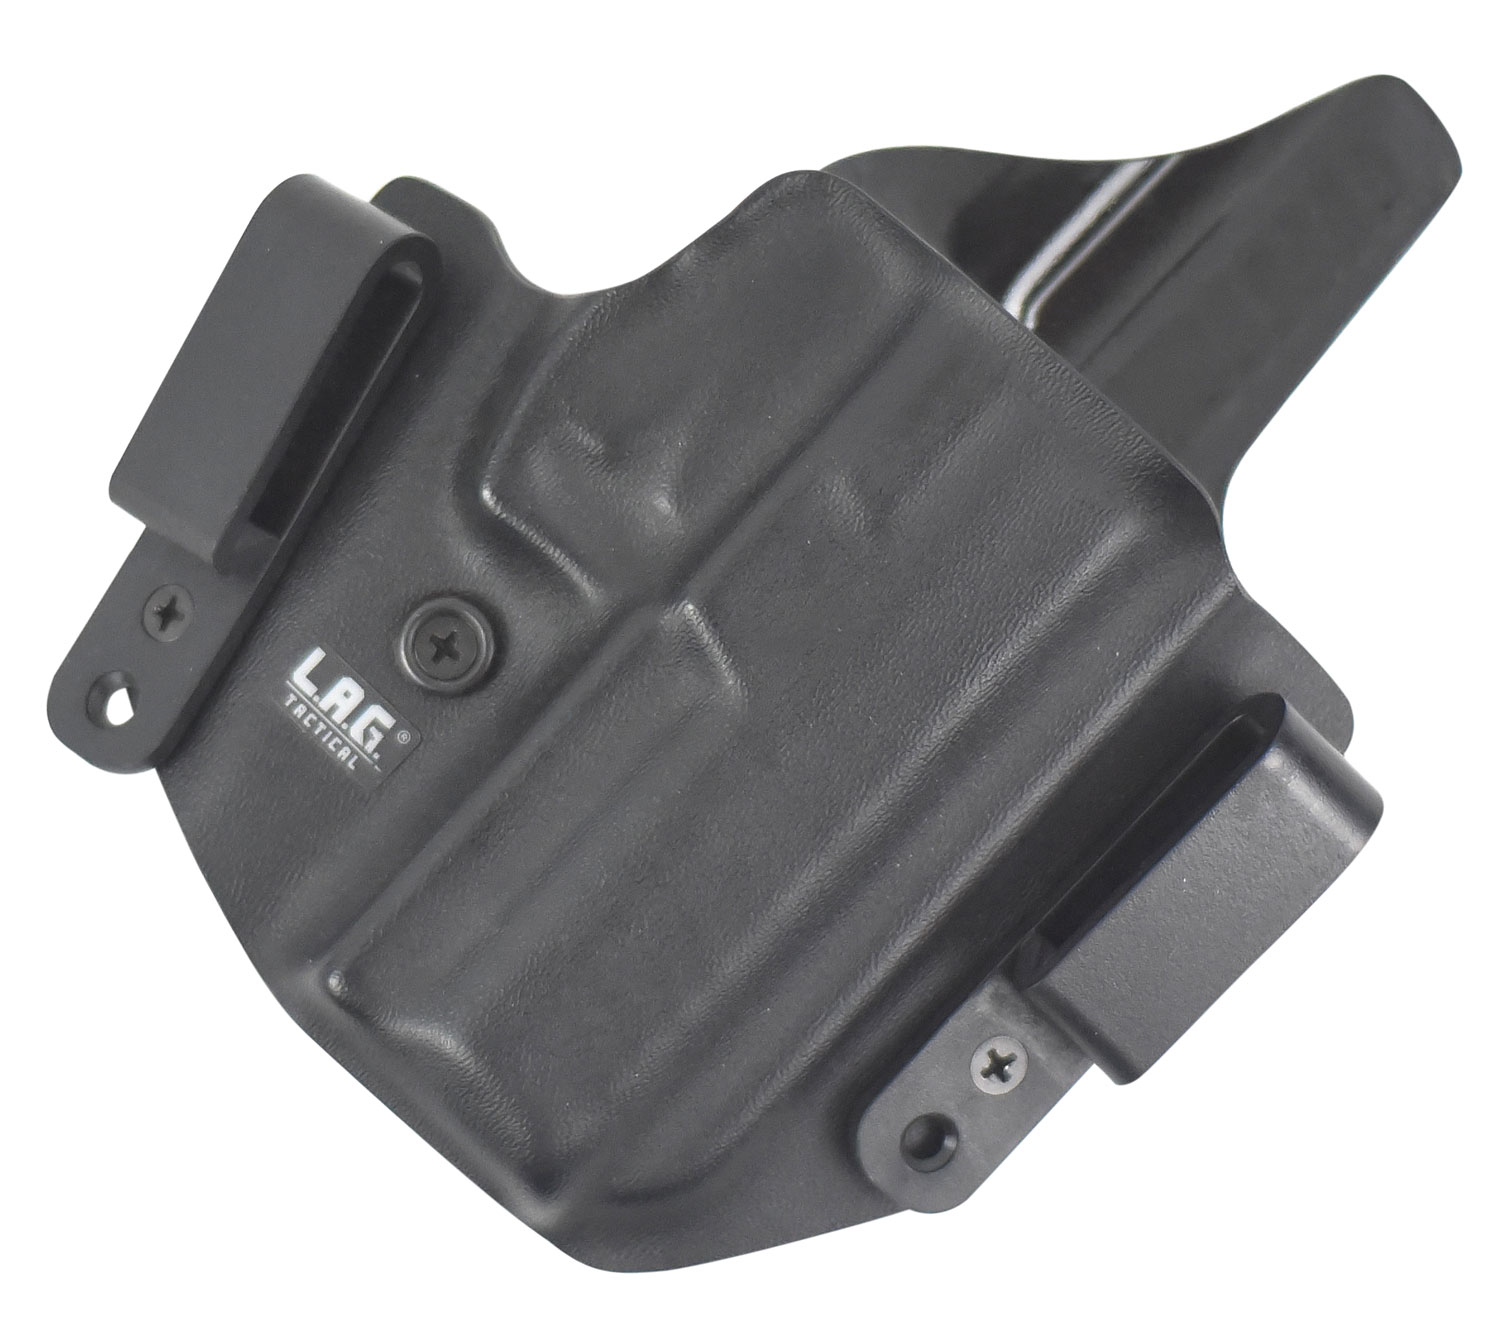 LAG TACTICAL INC 1044 Defender  Inside-Outisde-The-Waistband Holster Glock 42 Kydex Black